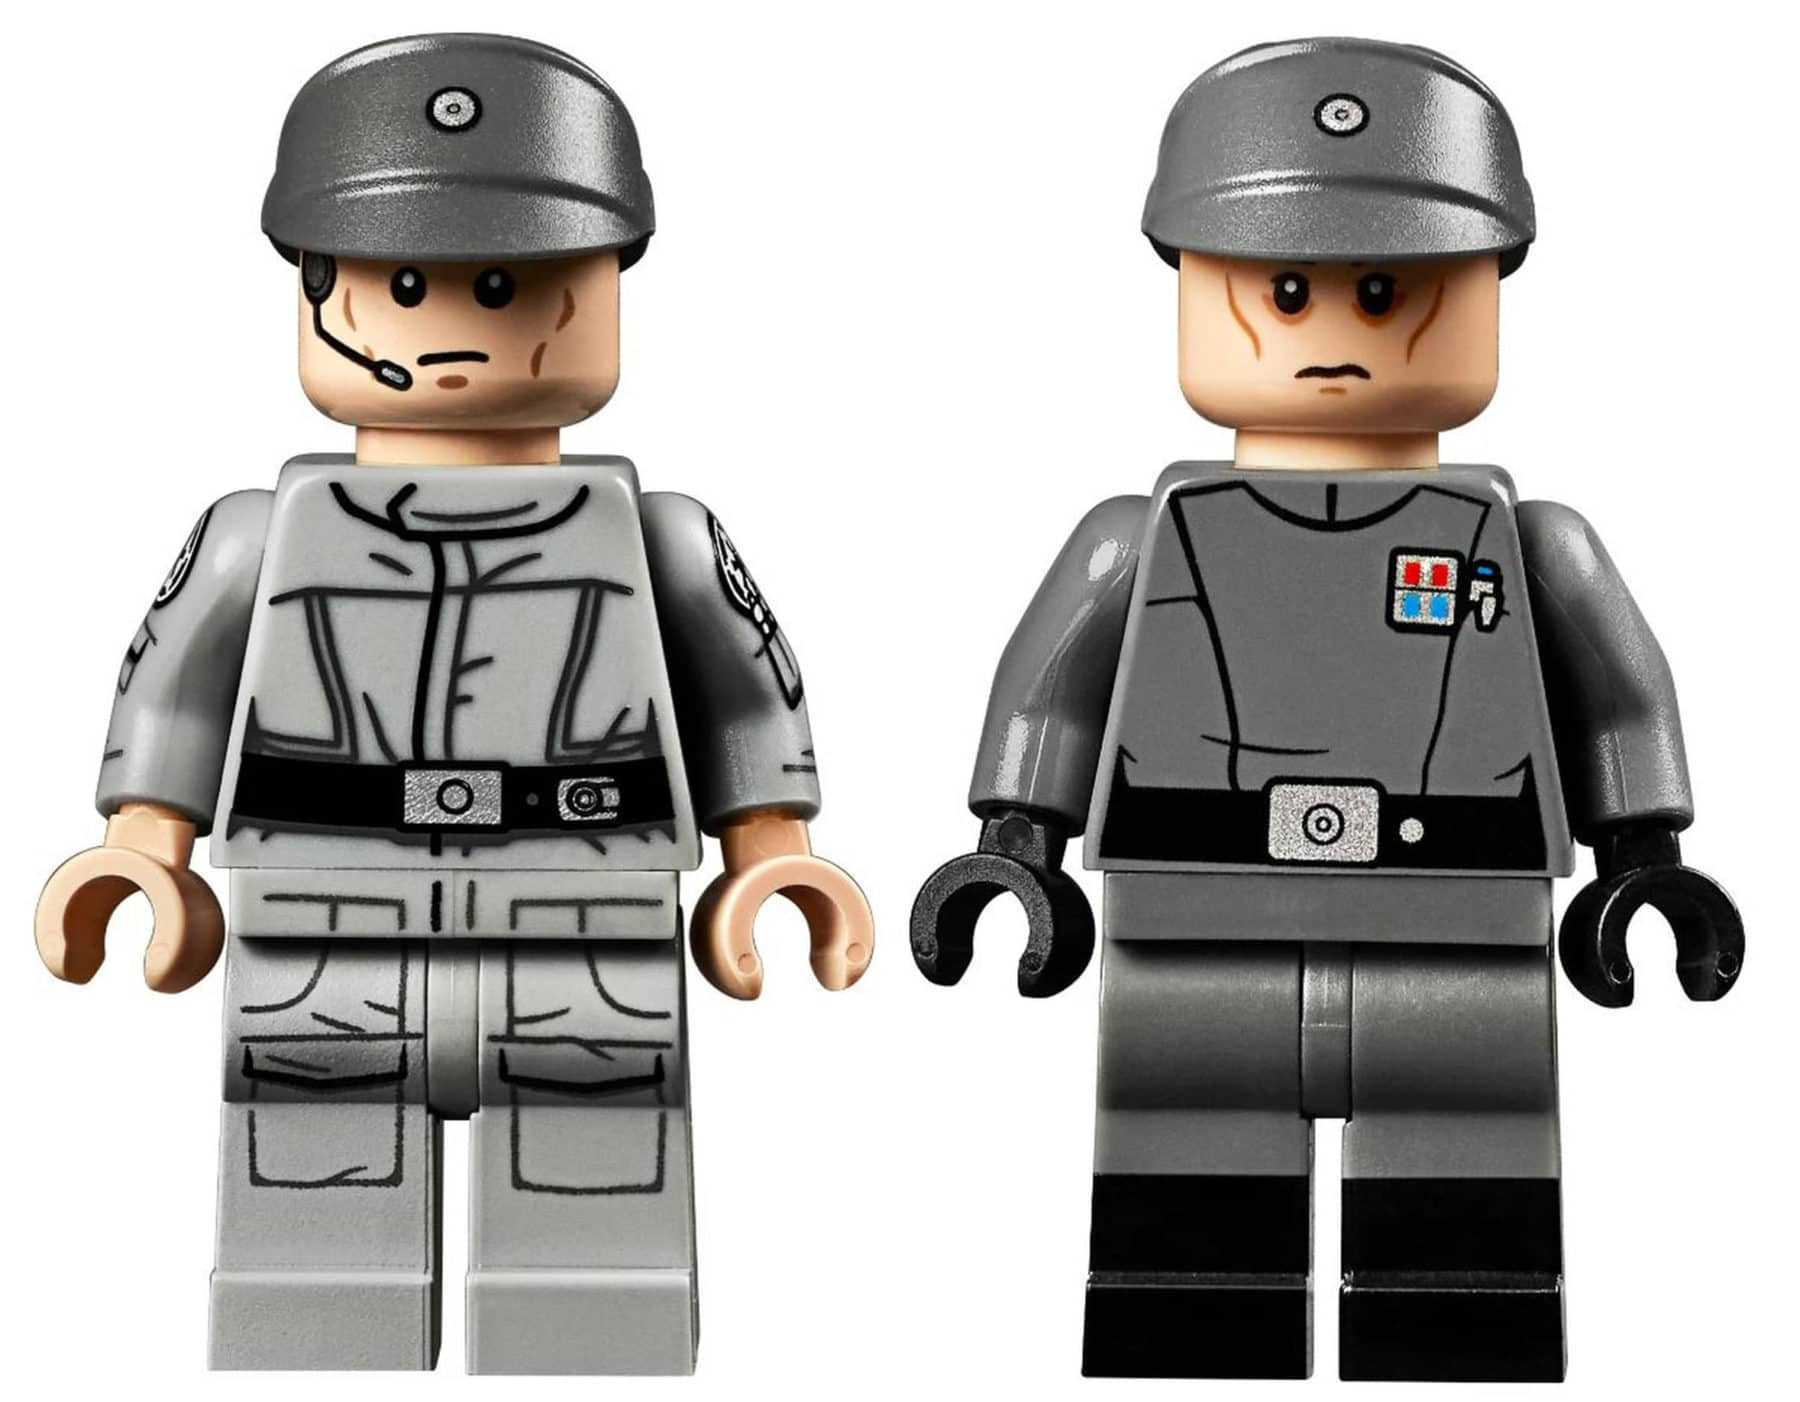 LEGO 75252 Minifiguren: Imperial Commander (links) und Imperial Officer (rechts)